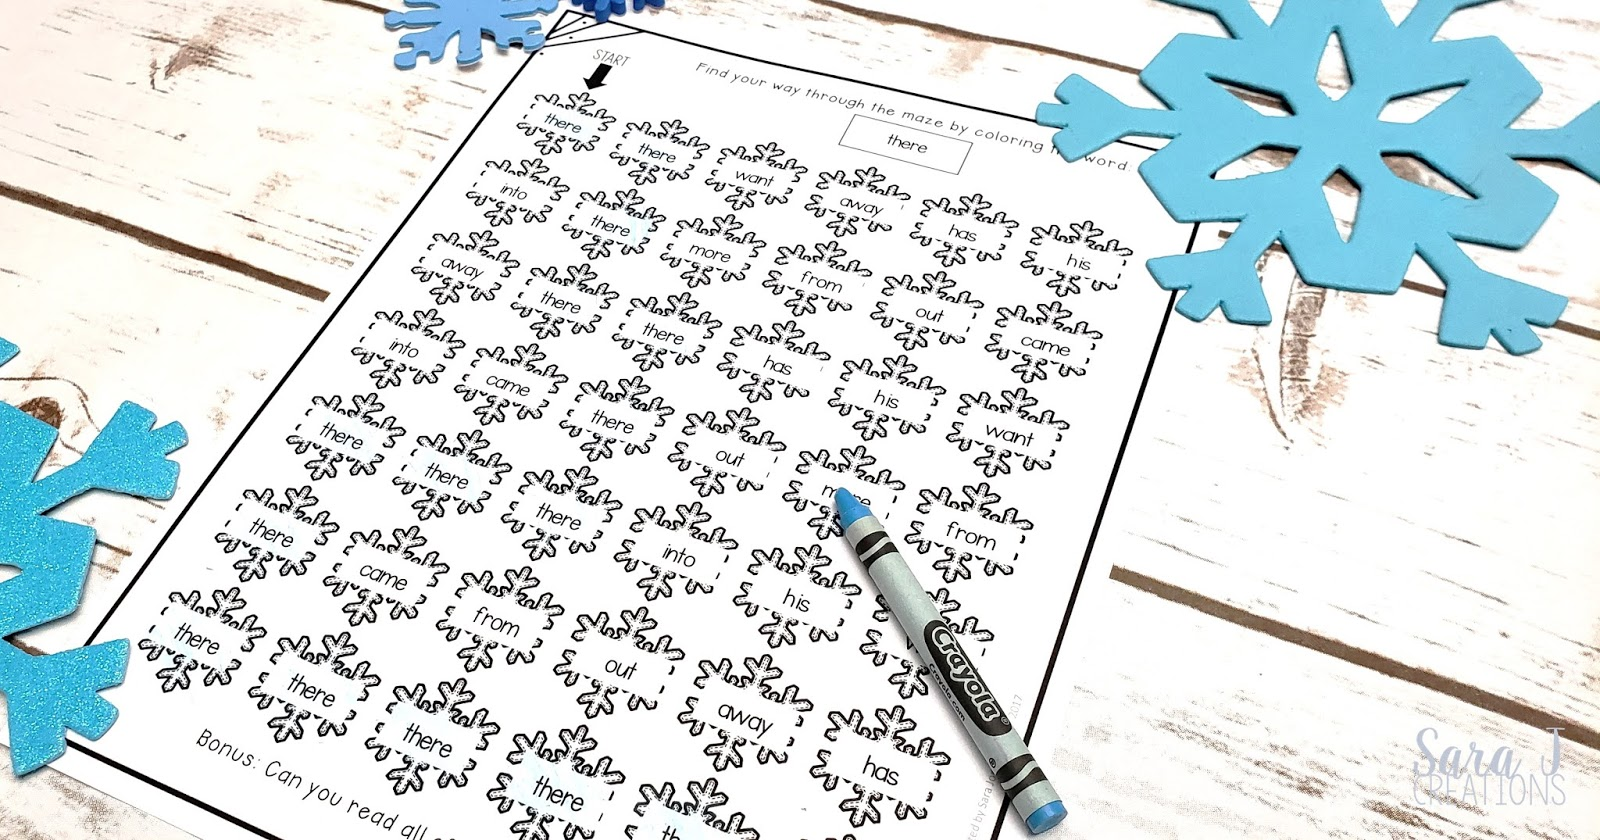 Add this to your list of sight word games and activities. FREE snowflake themed sight word mazes. Perfect for teaching new sight words or to practice sight words at any age - preschool, kindergarten and beyond.